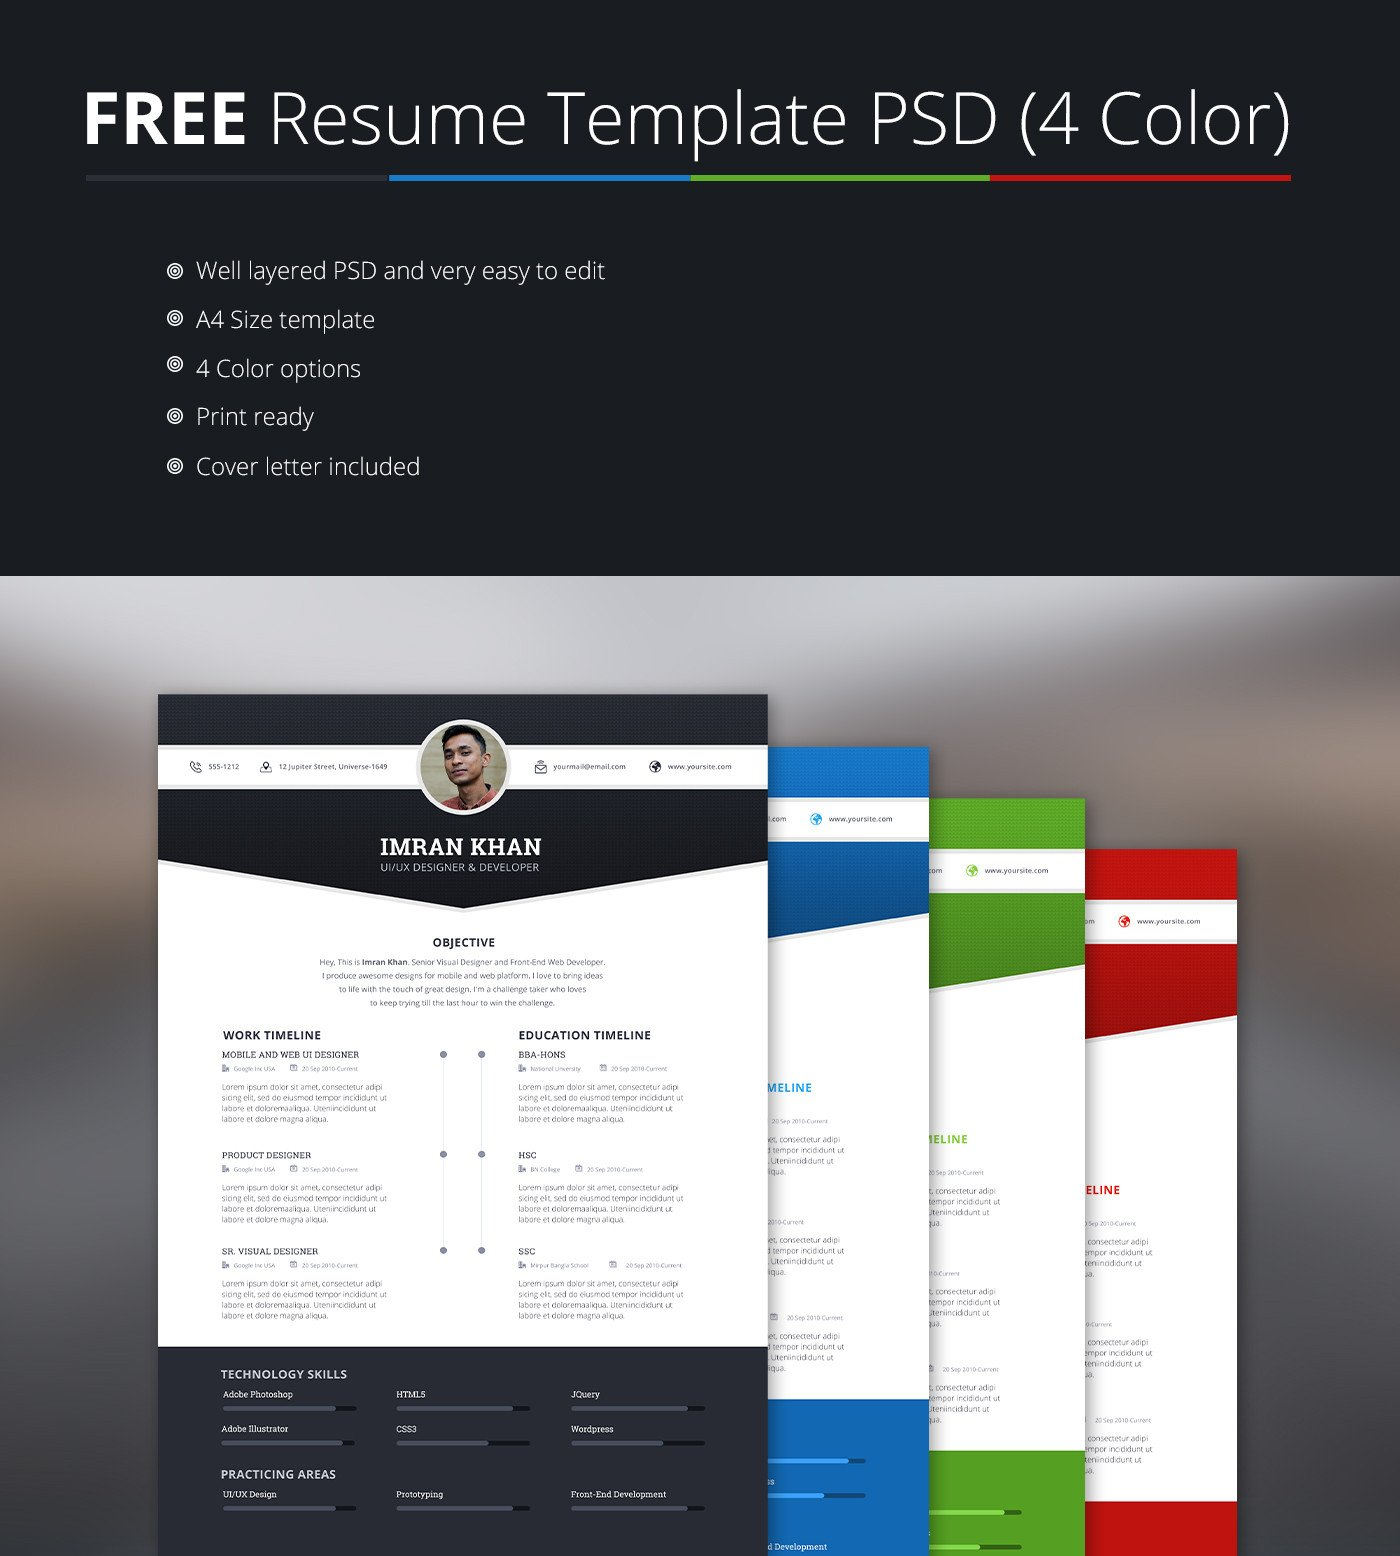 Free Psd Resume Templates Free Resume Template Psd 4 Colors On Behance